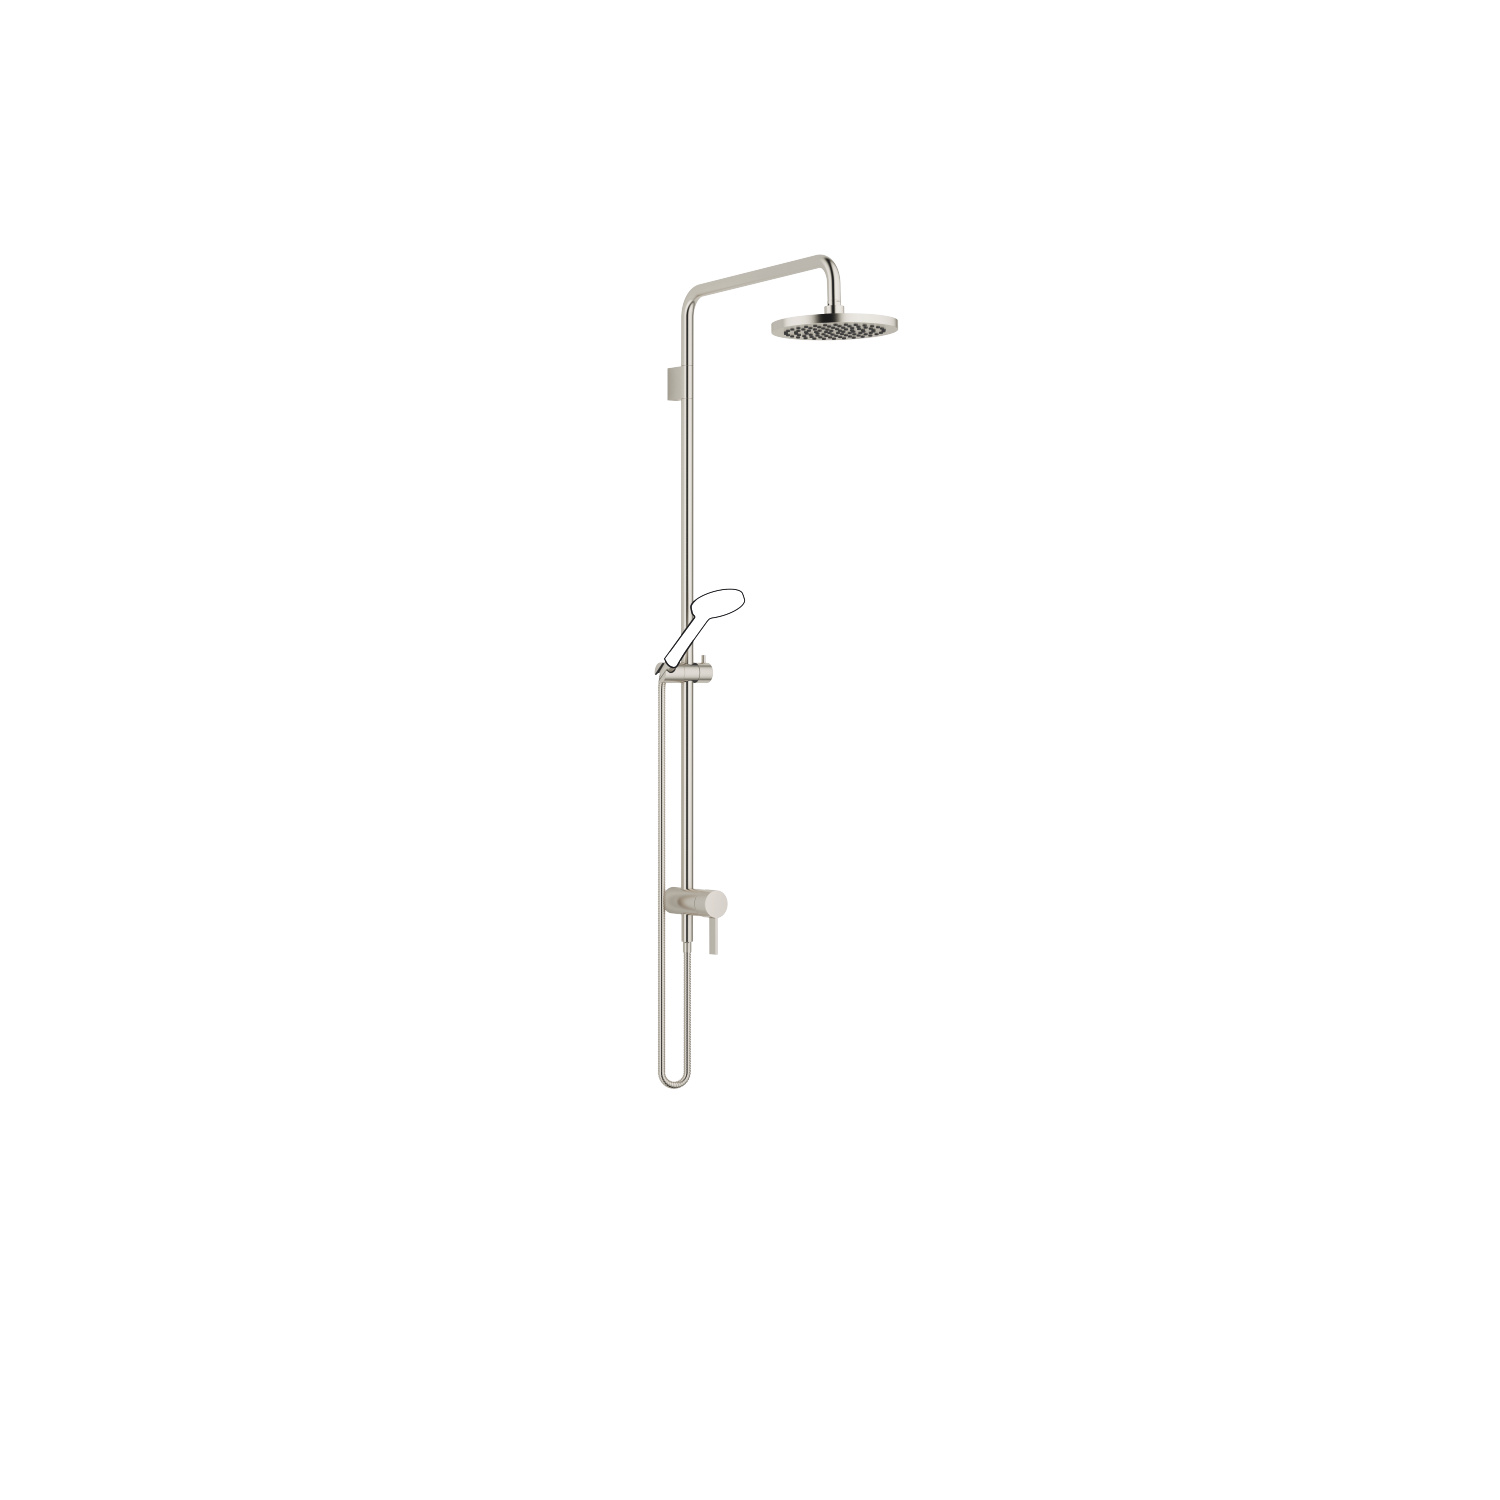 Showerpipe with single-lever shower mixer - platinum matt